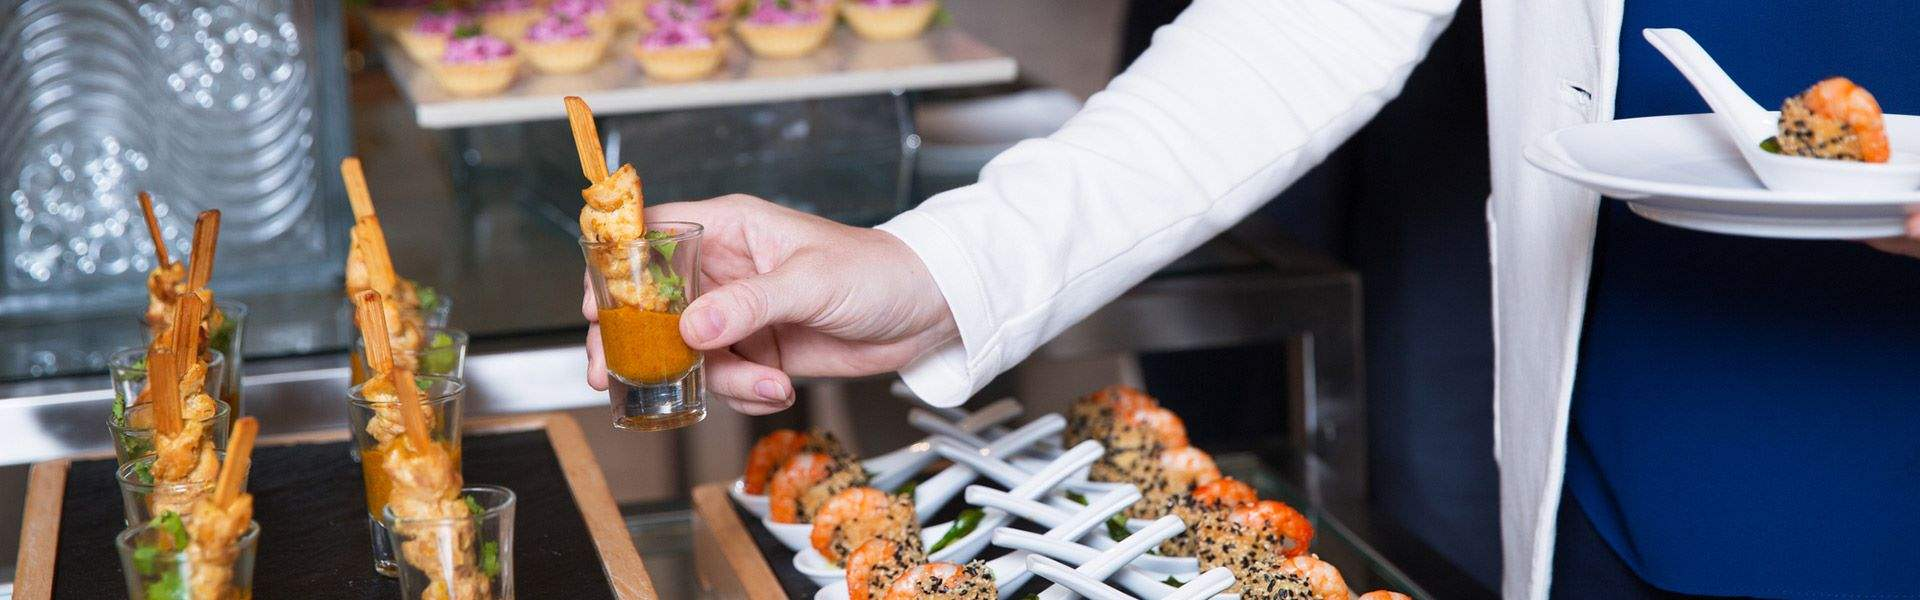 Onsite Catering Services in Lynchburg, VA